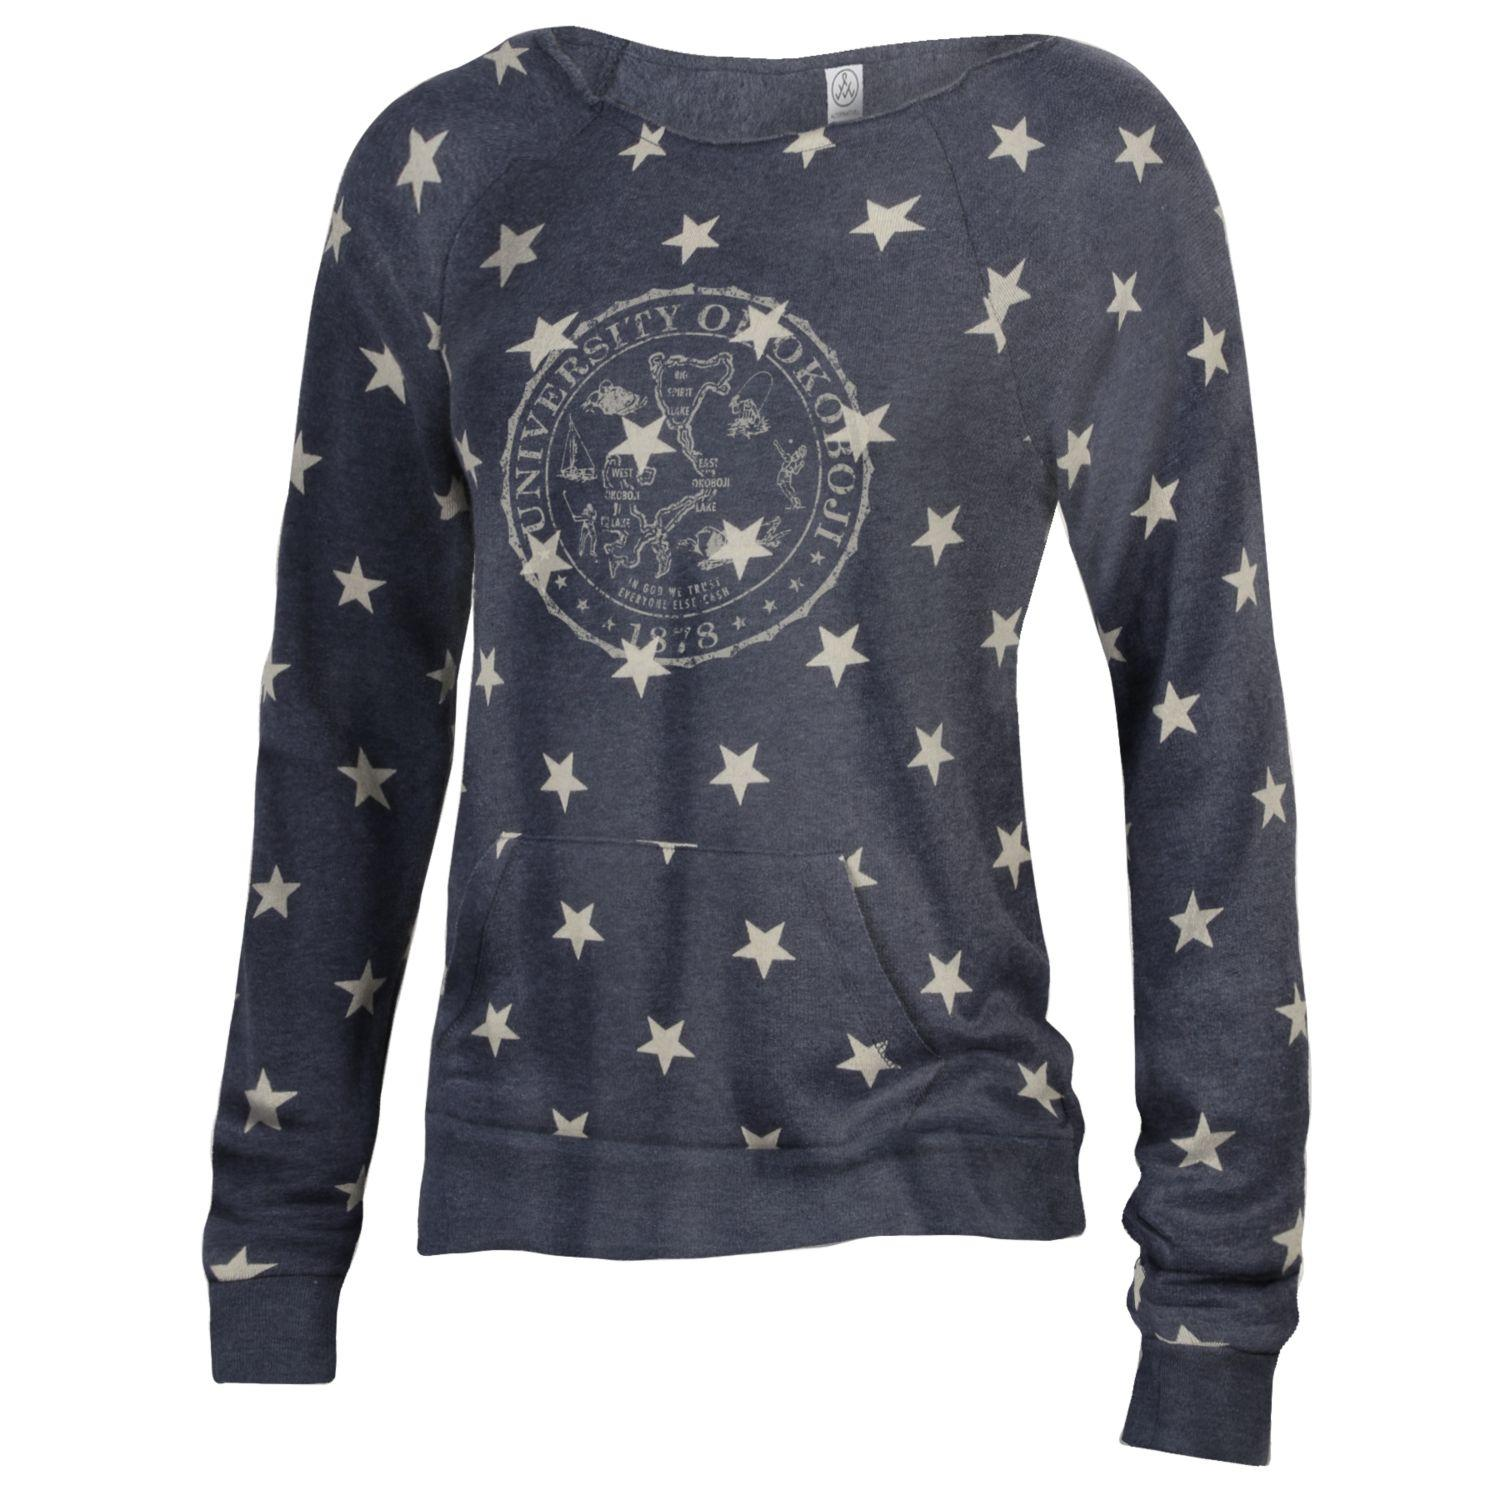 Ladies University of Okoboji Maniac Sweatshirt - Stars